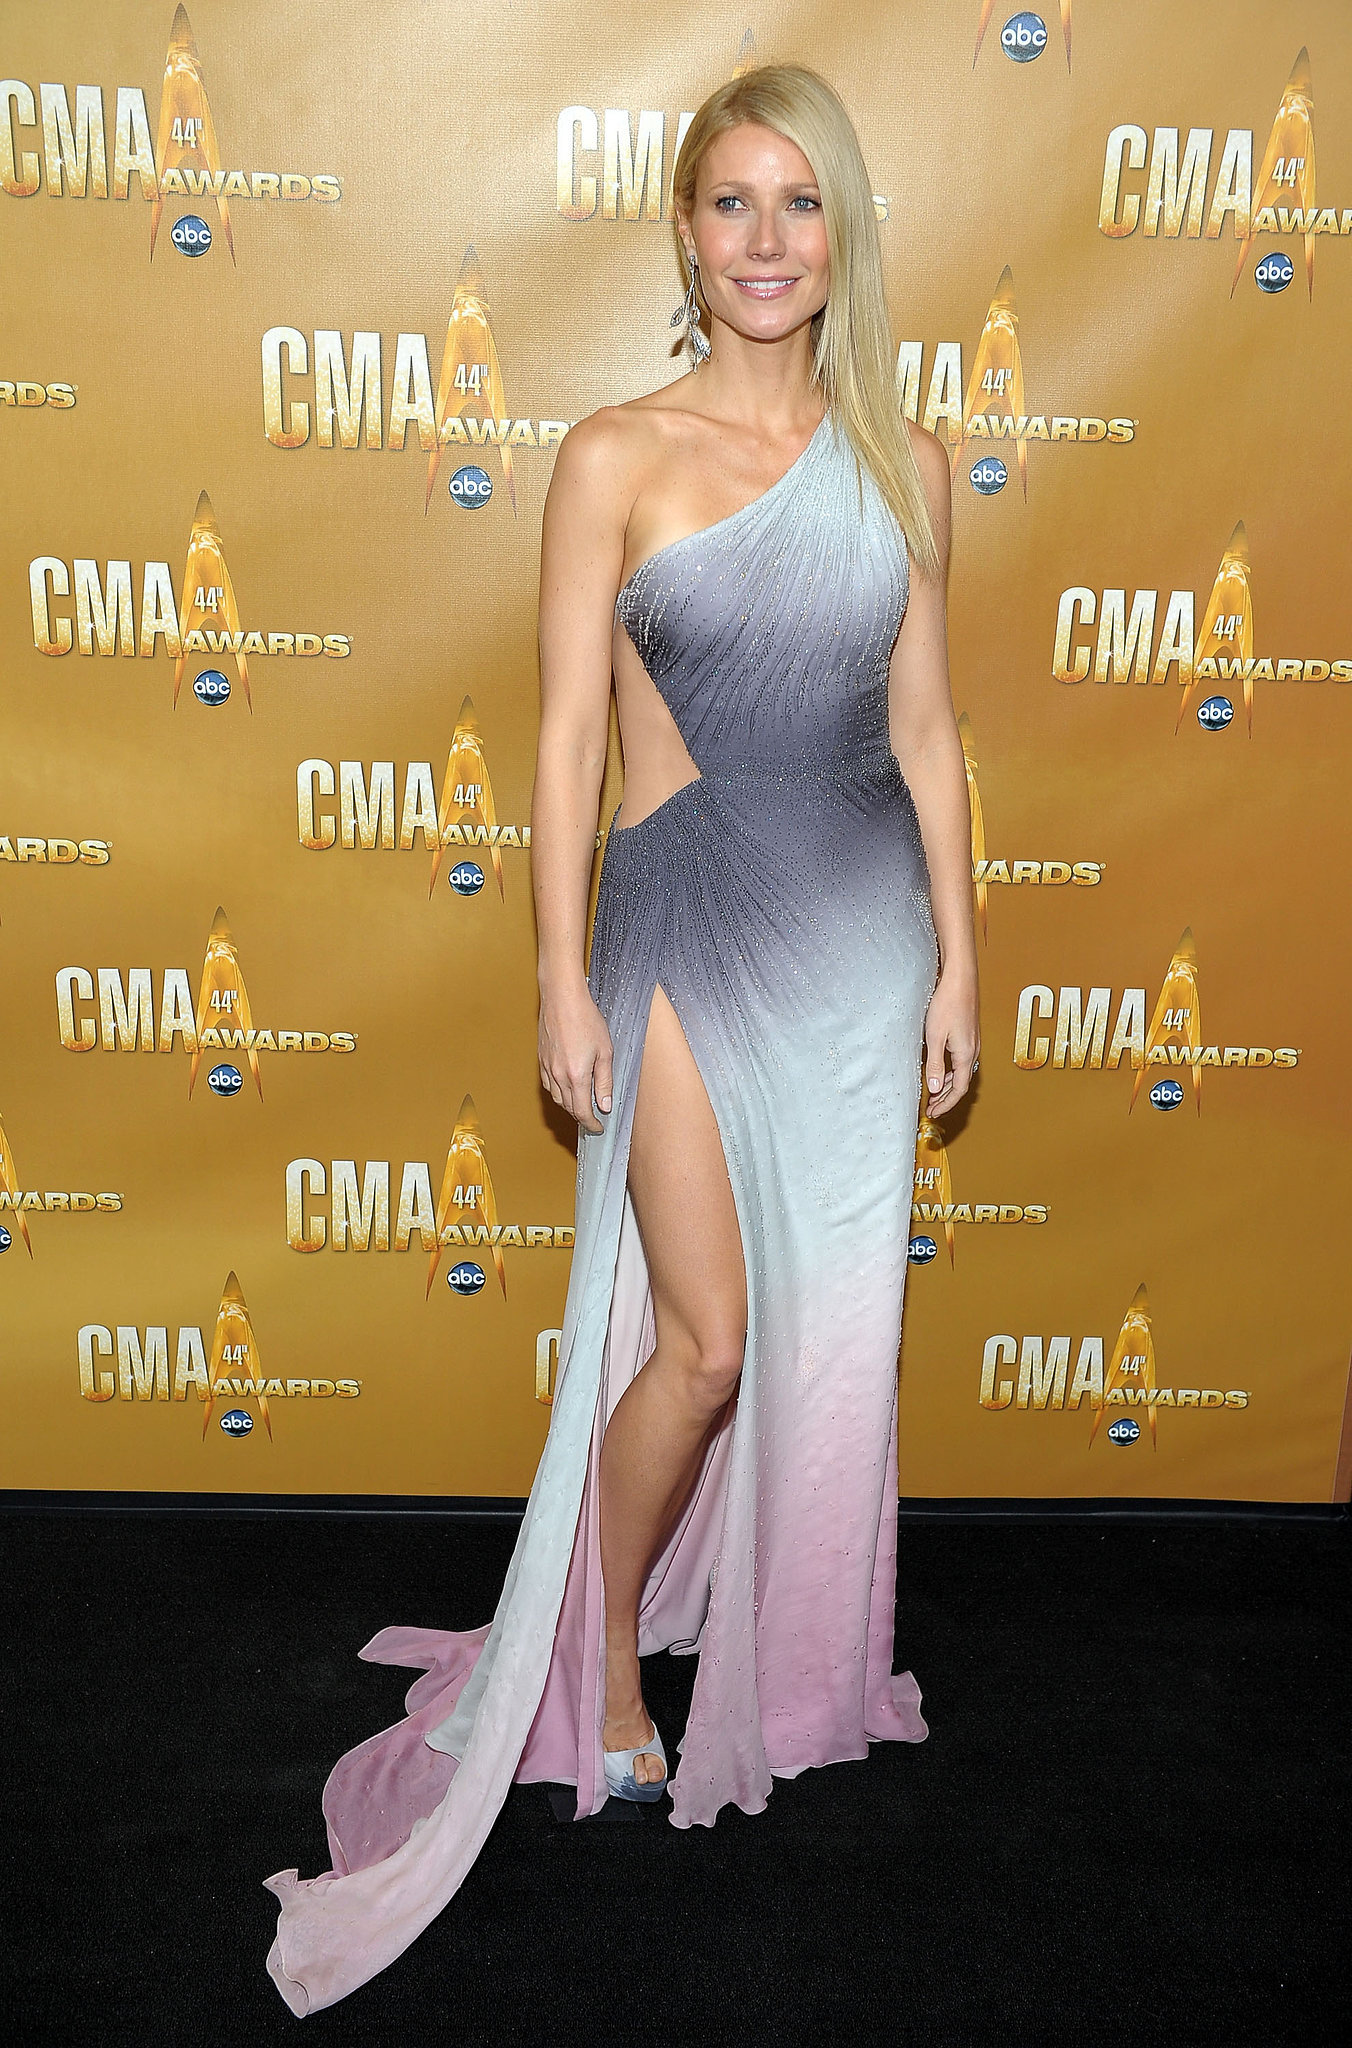 Gwyneth Paltrow in Versace at the CMA Awards